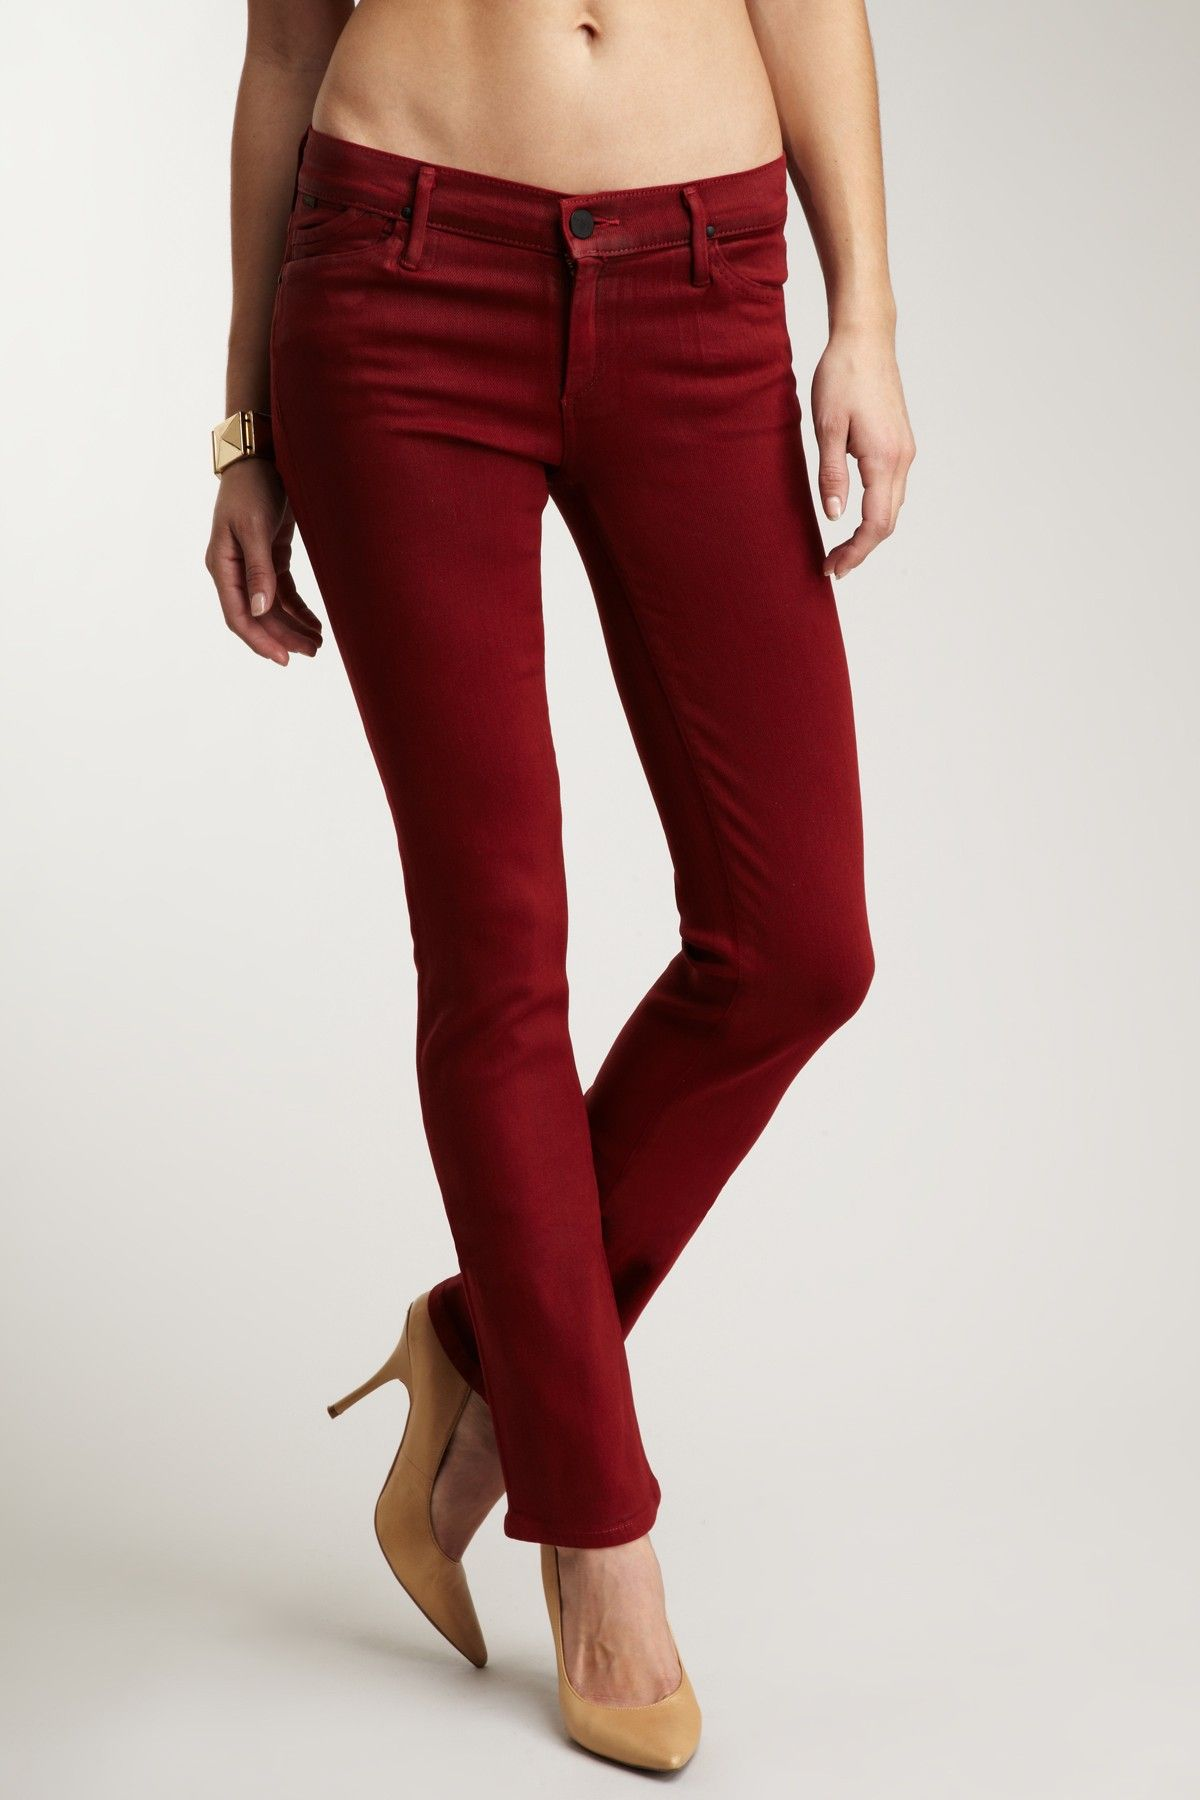 various styles best authentic order Goldsign Ruby jeans:: 57% off...dang! my size is gone. AWESOME ...